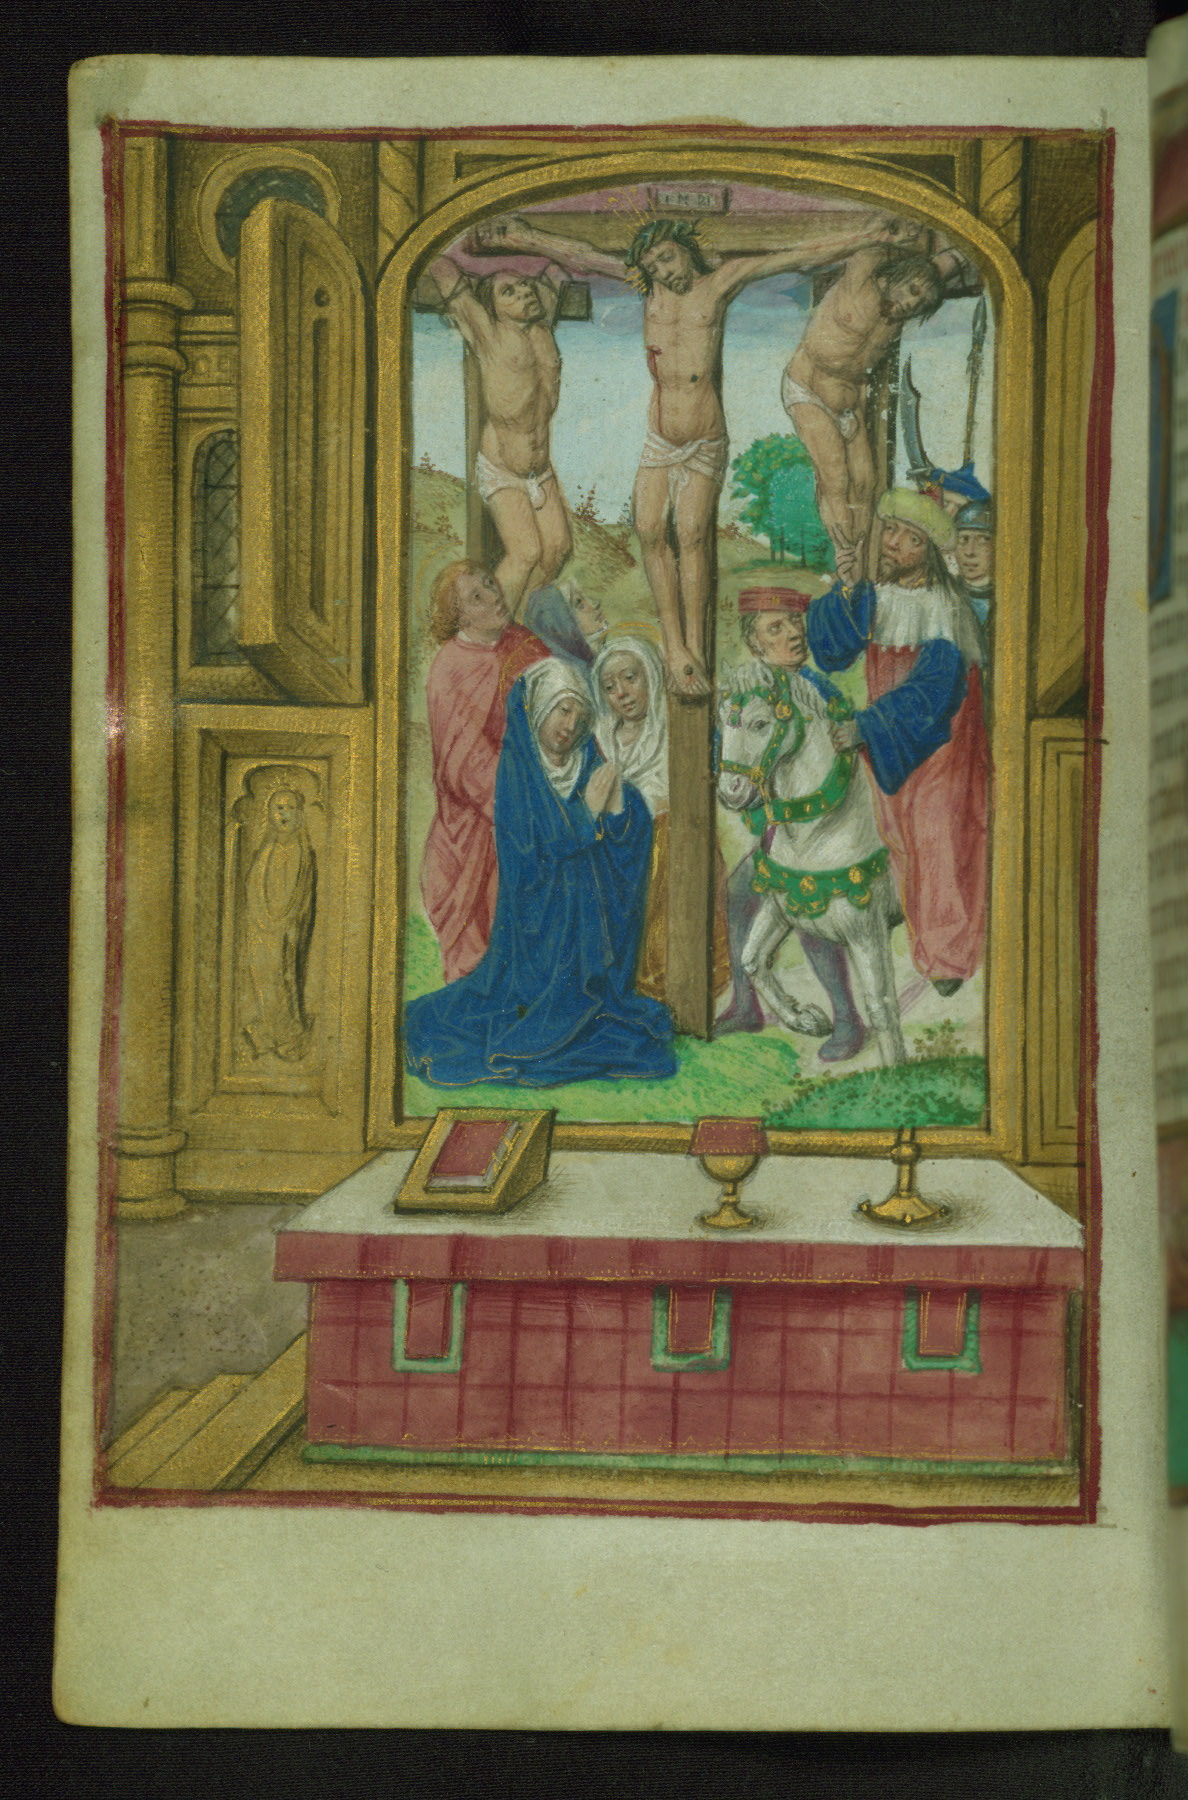 Book of Hours 1500 ca Ms. W.427 Walters Art Museum Baltimore fol. 18v Crucifixion